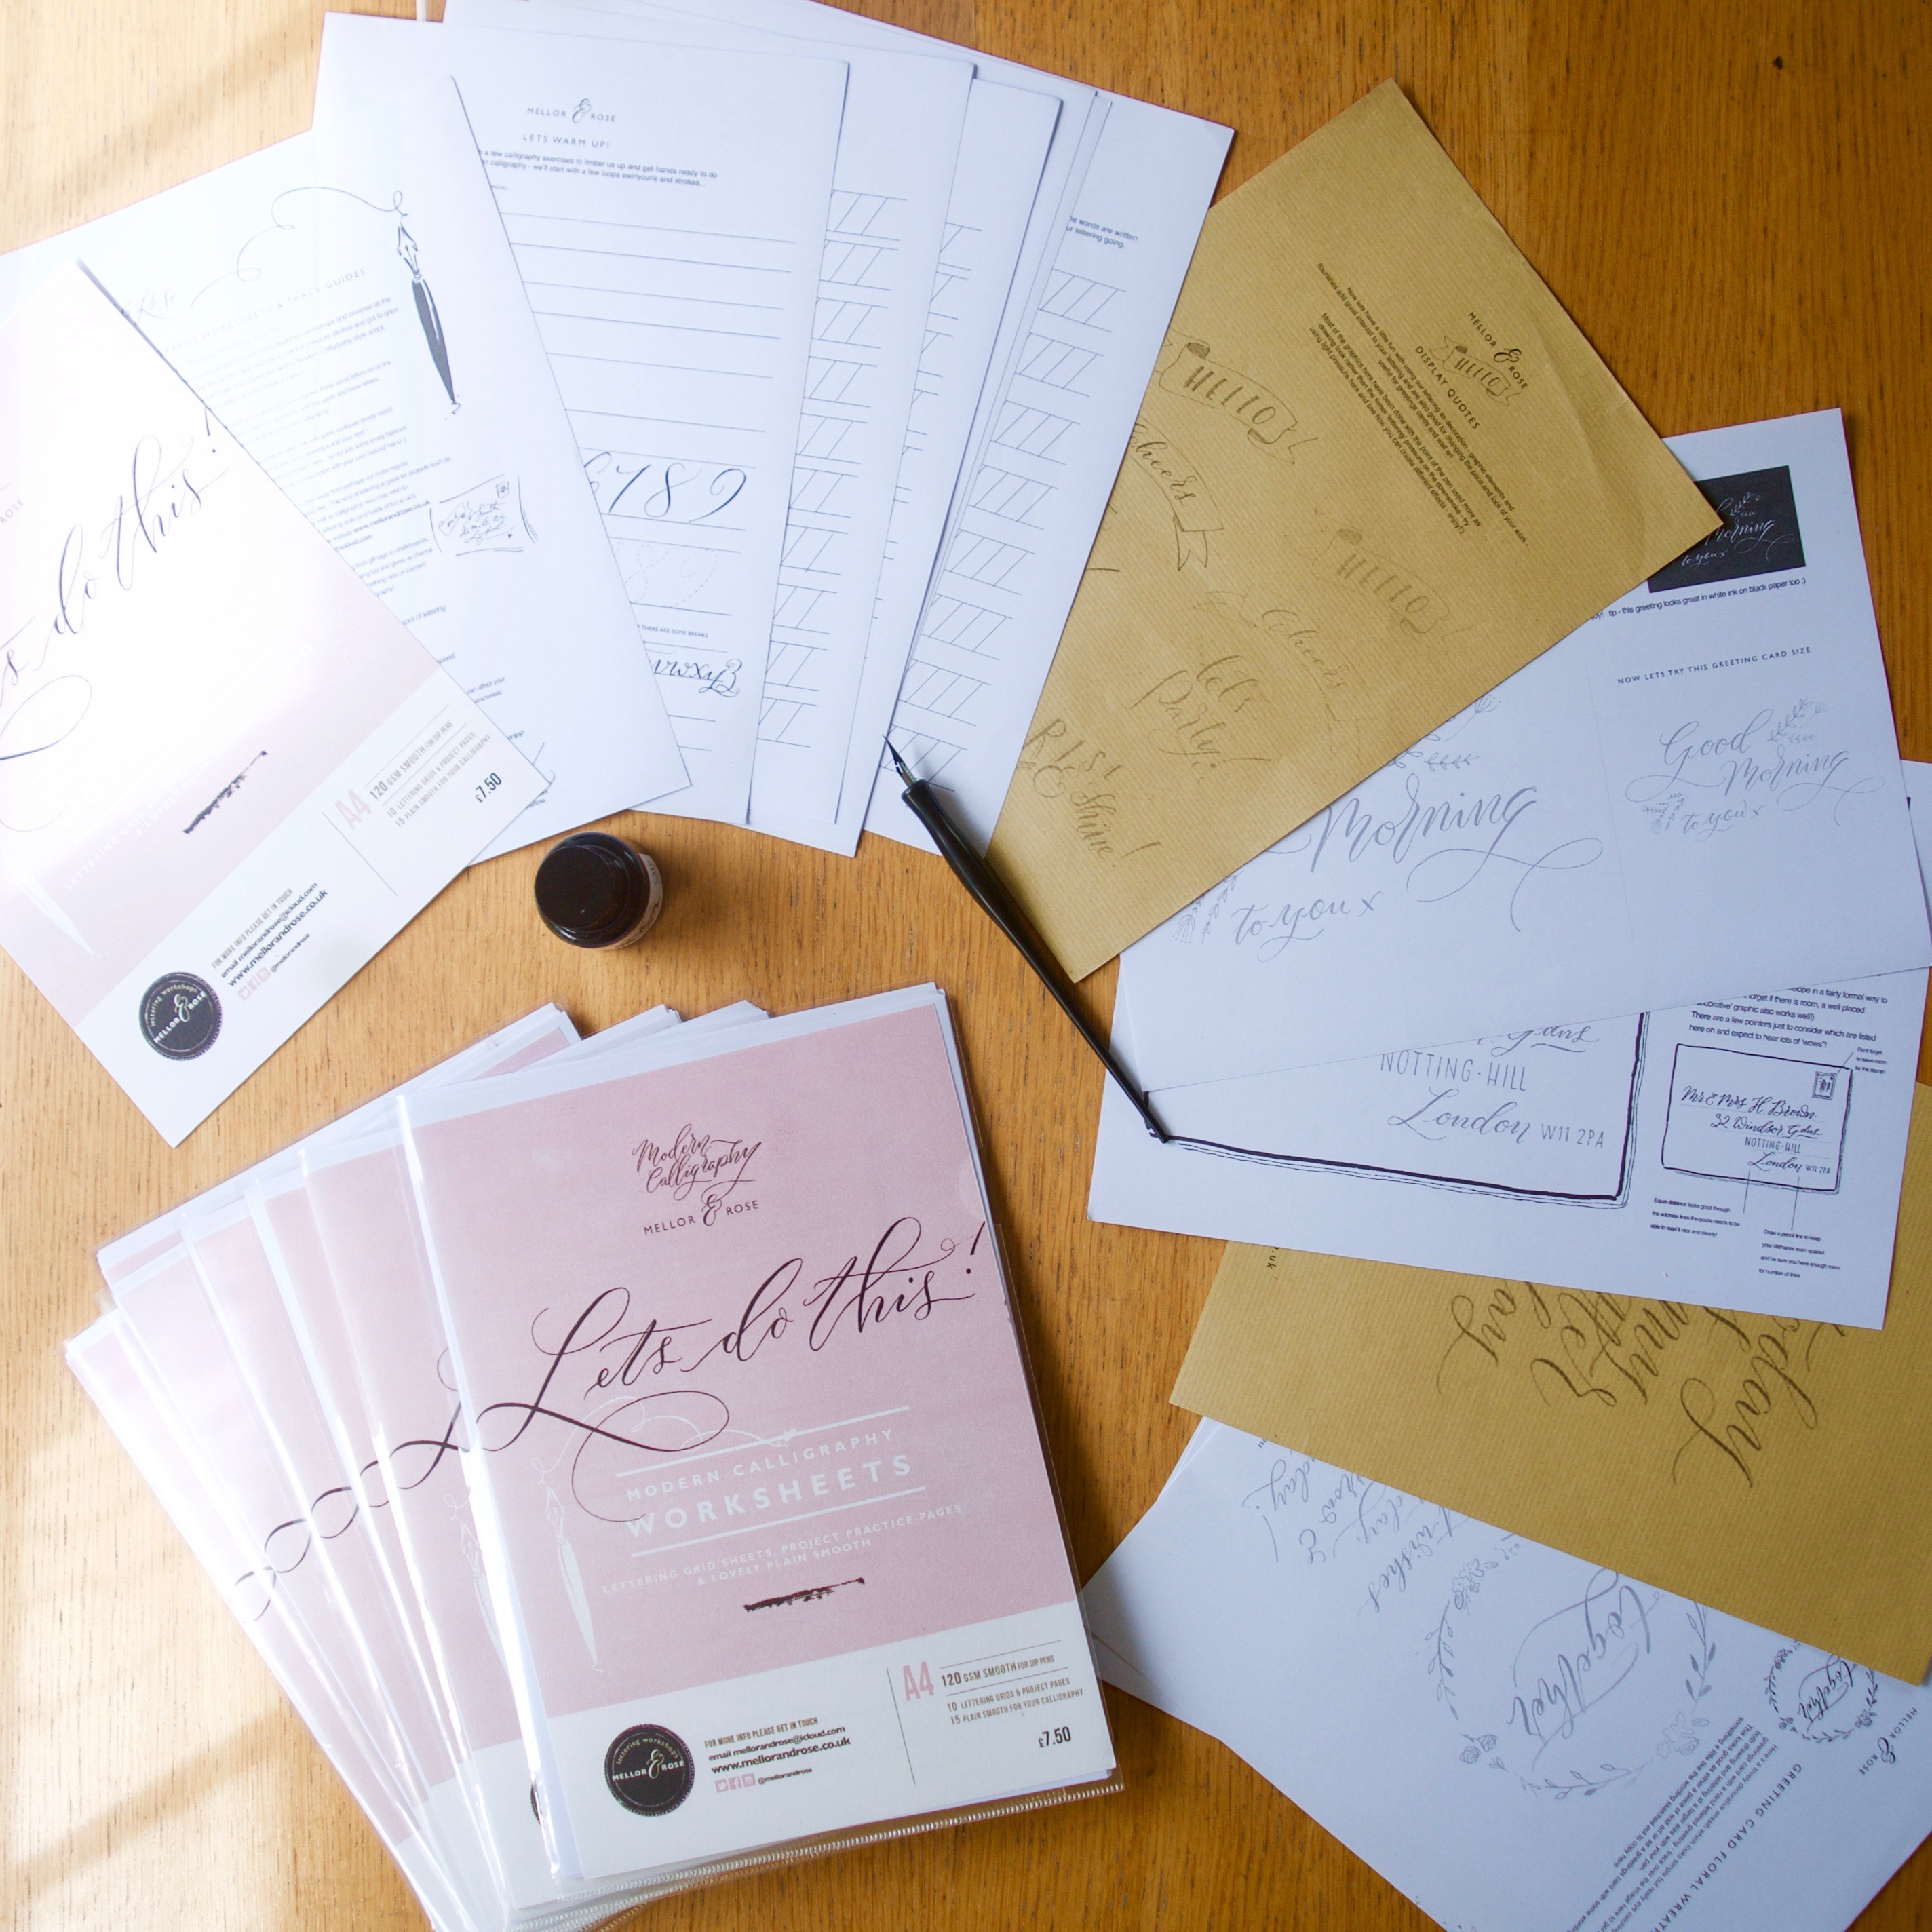 Mellor & Rose Modern Calligraphy worksheets